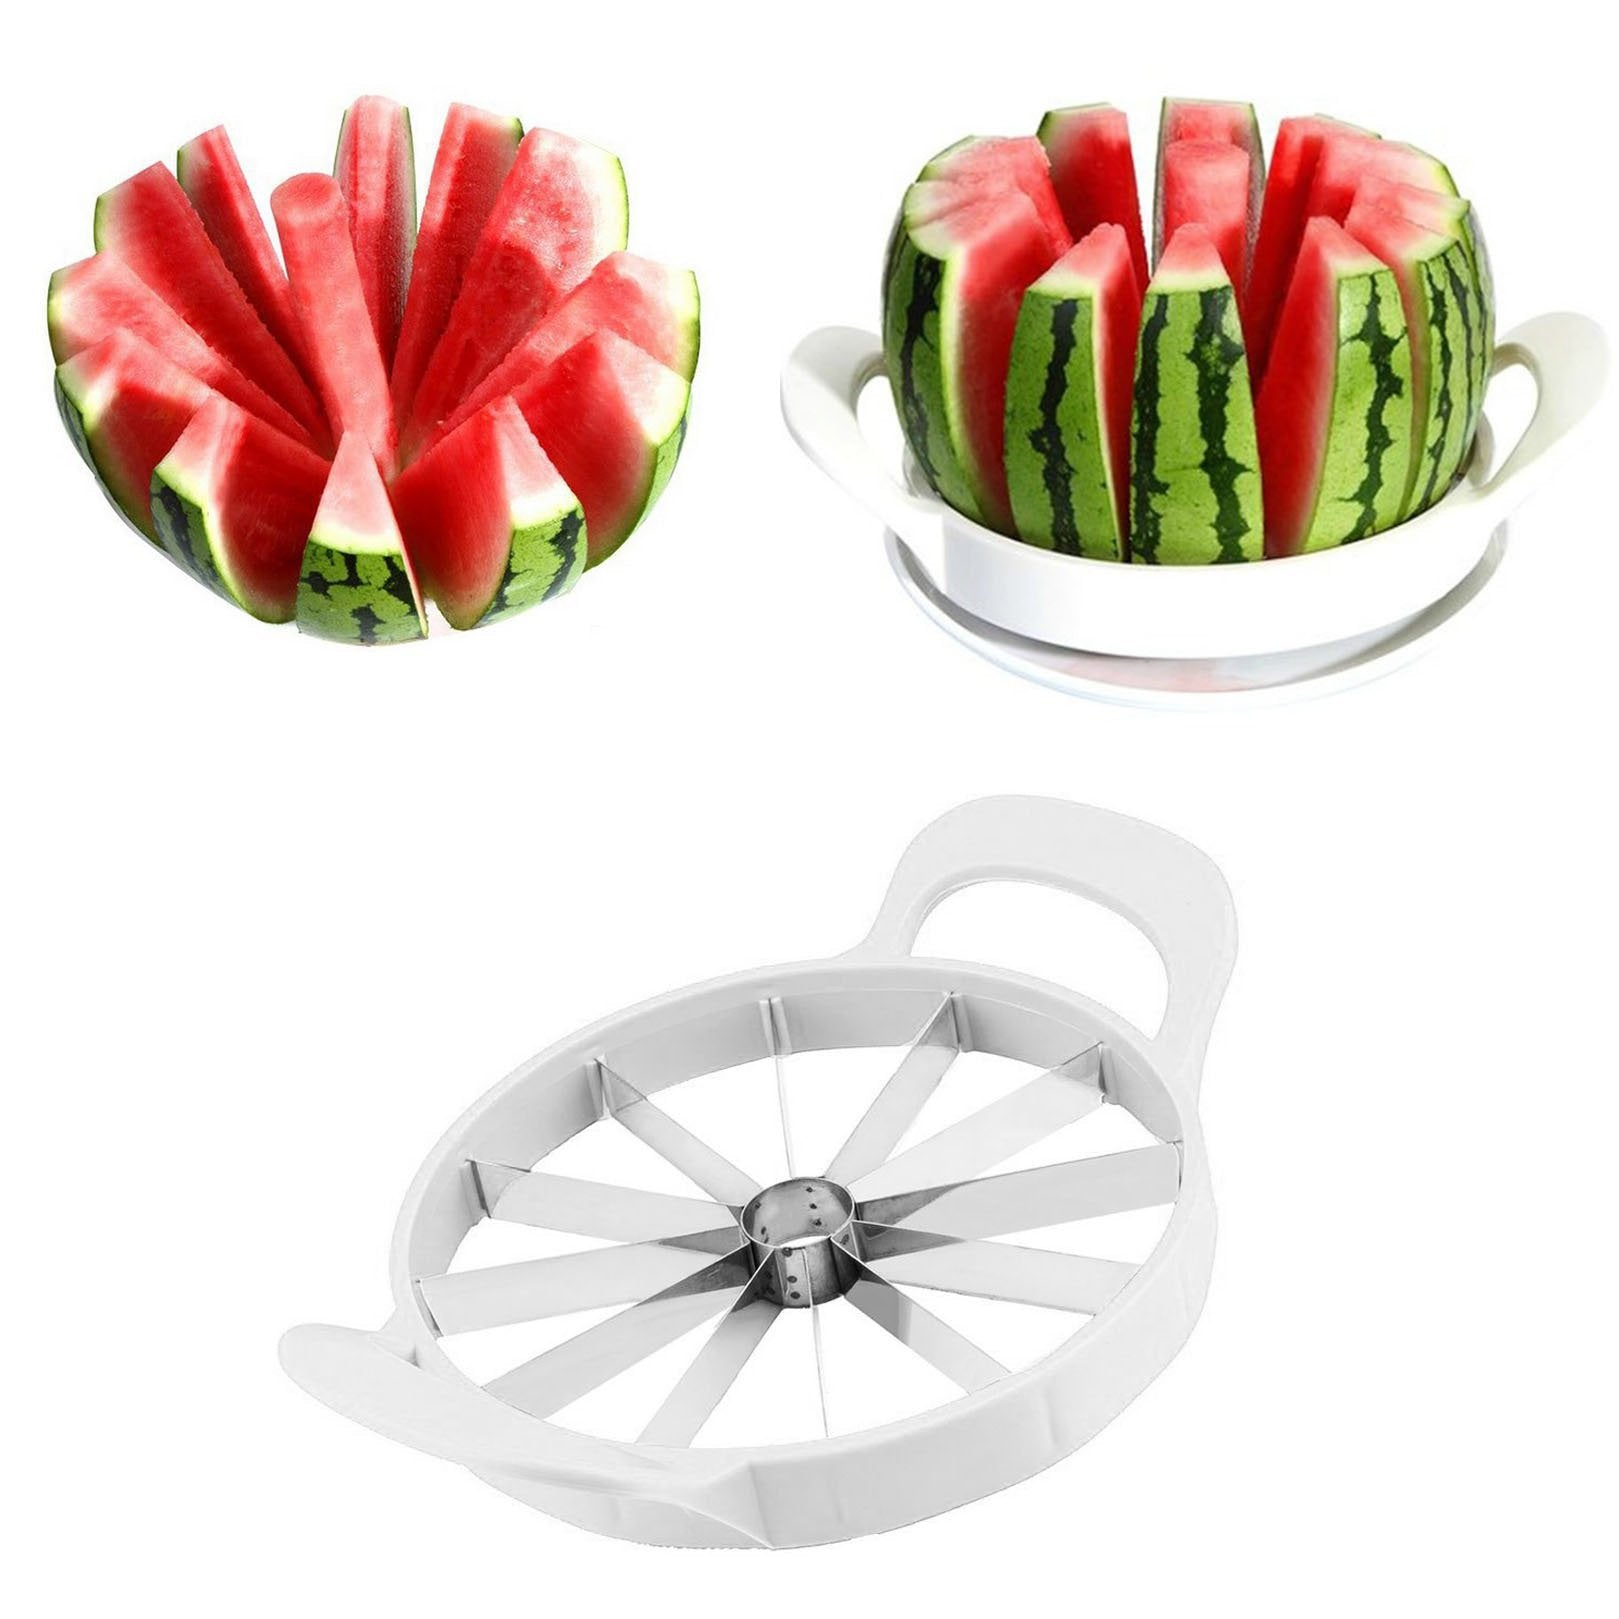 Watermelon Melon Fruit Slicer Cantaloupe Divider Kitchen Tool Stainless Cutter